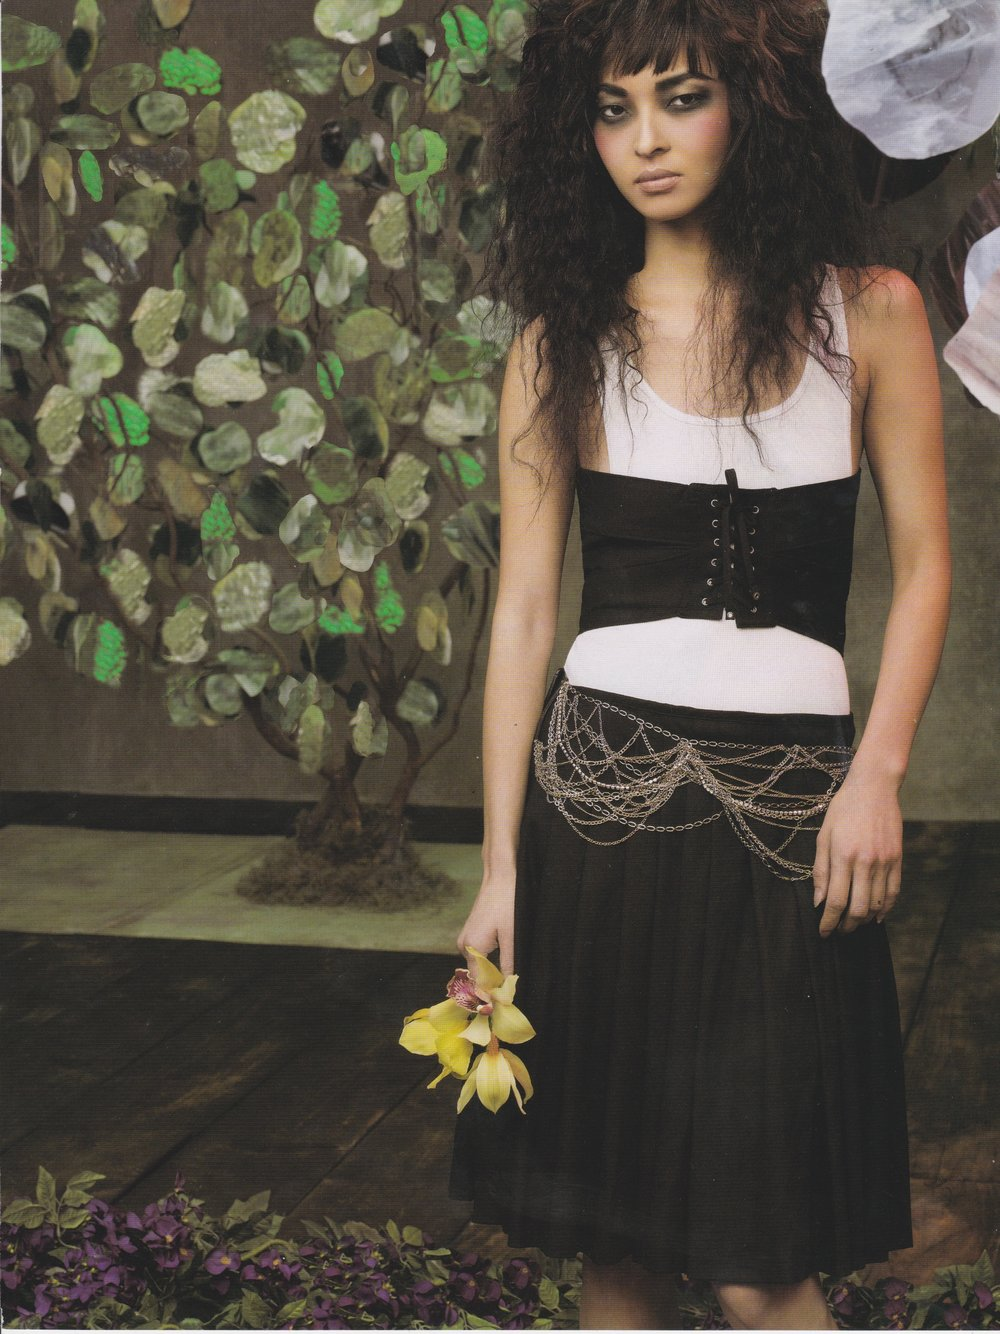 Fashion Shoot - Scenic Art Glass Gem Trees and Floral Wall